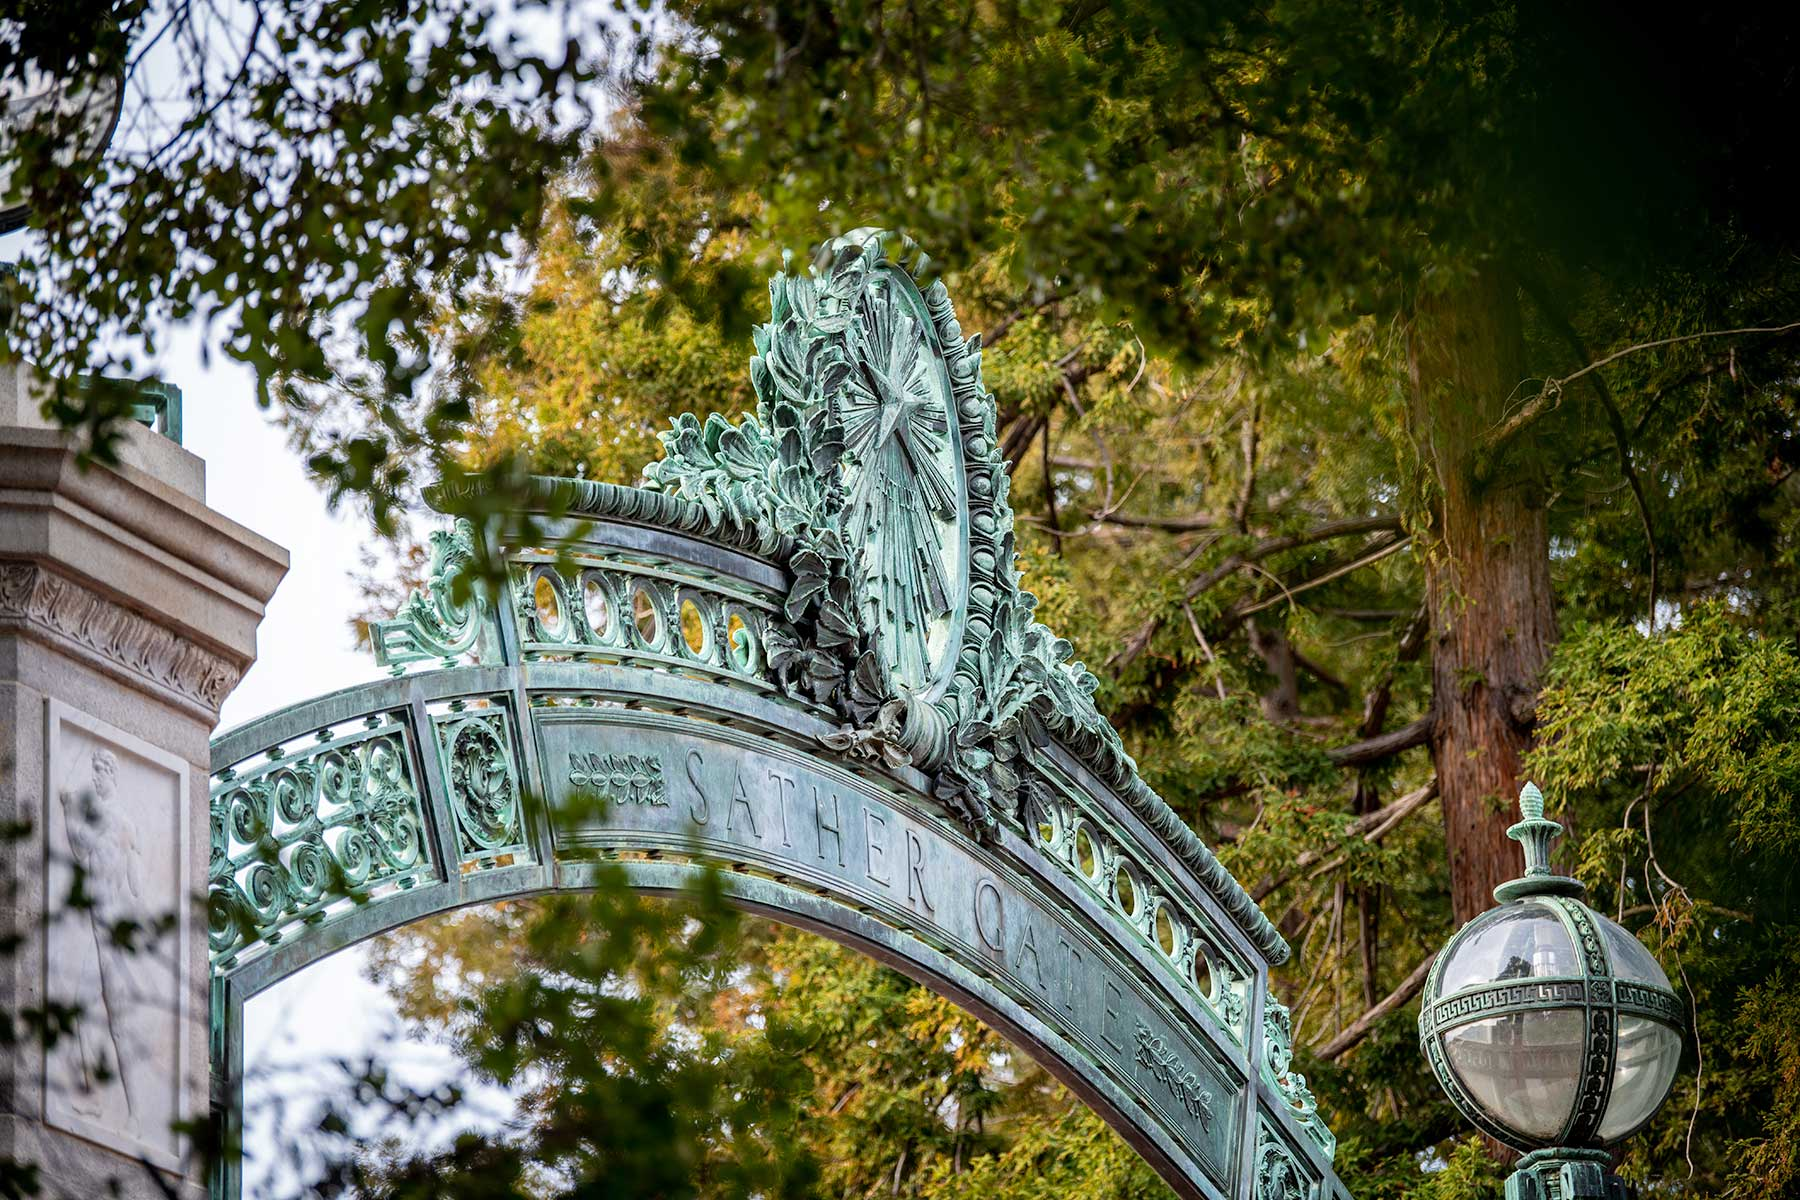 Sather gate on the UC Berkeley campus